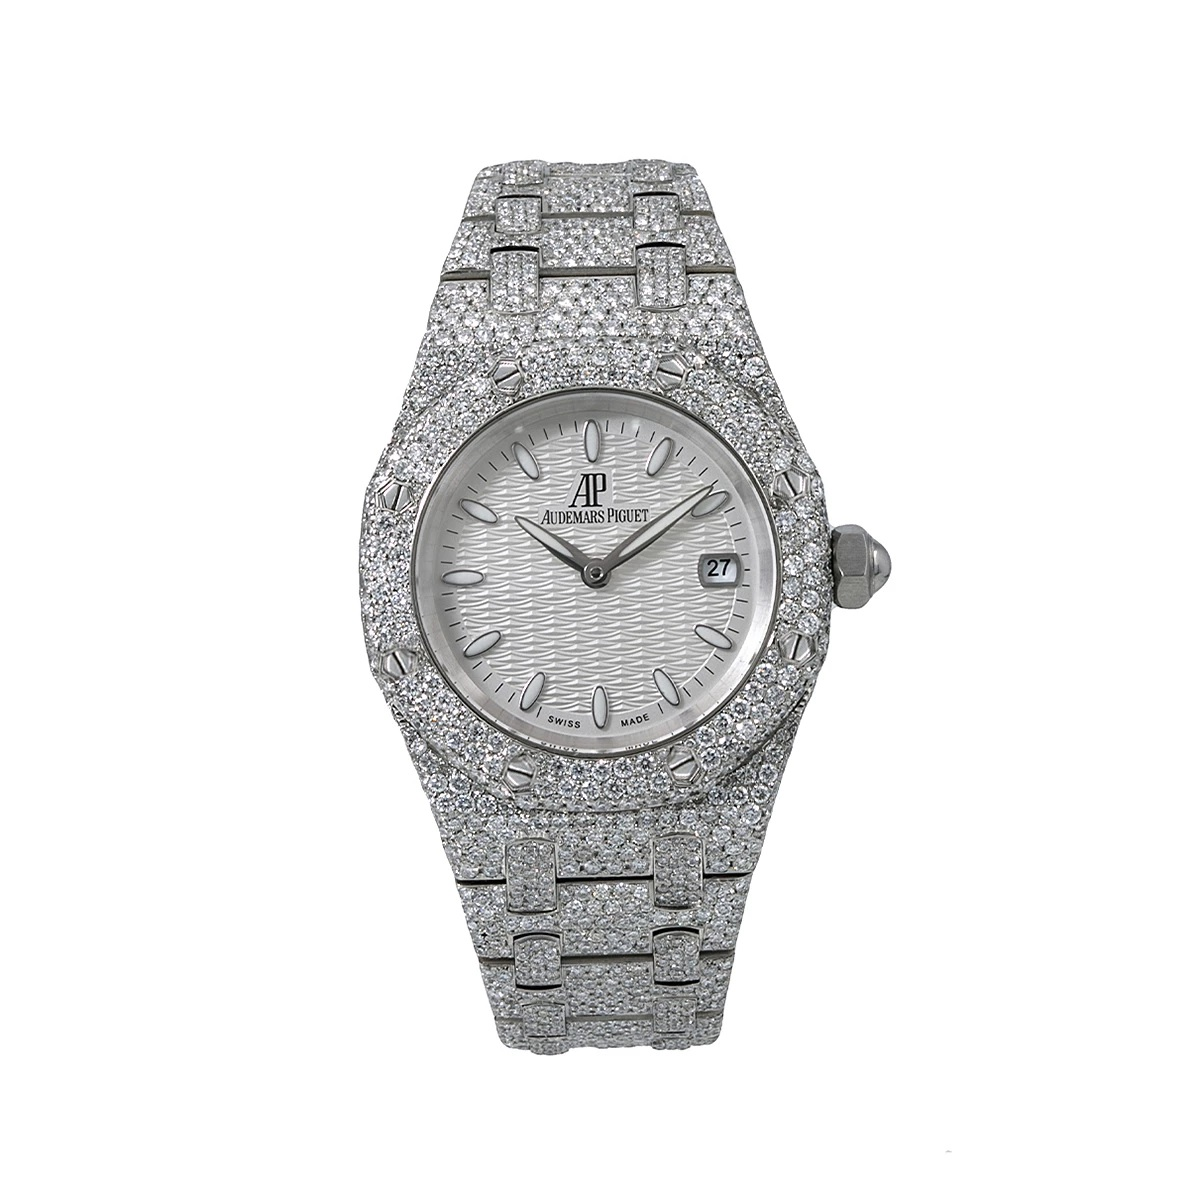 White Dial 33mm Audemars Piguet Royal Oak Ladies Diamond Watch 11.75ct Main Image